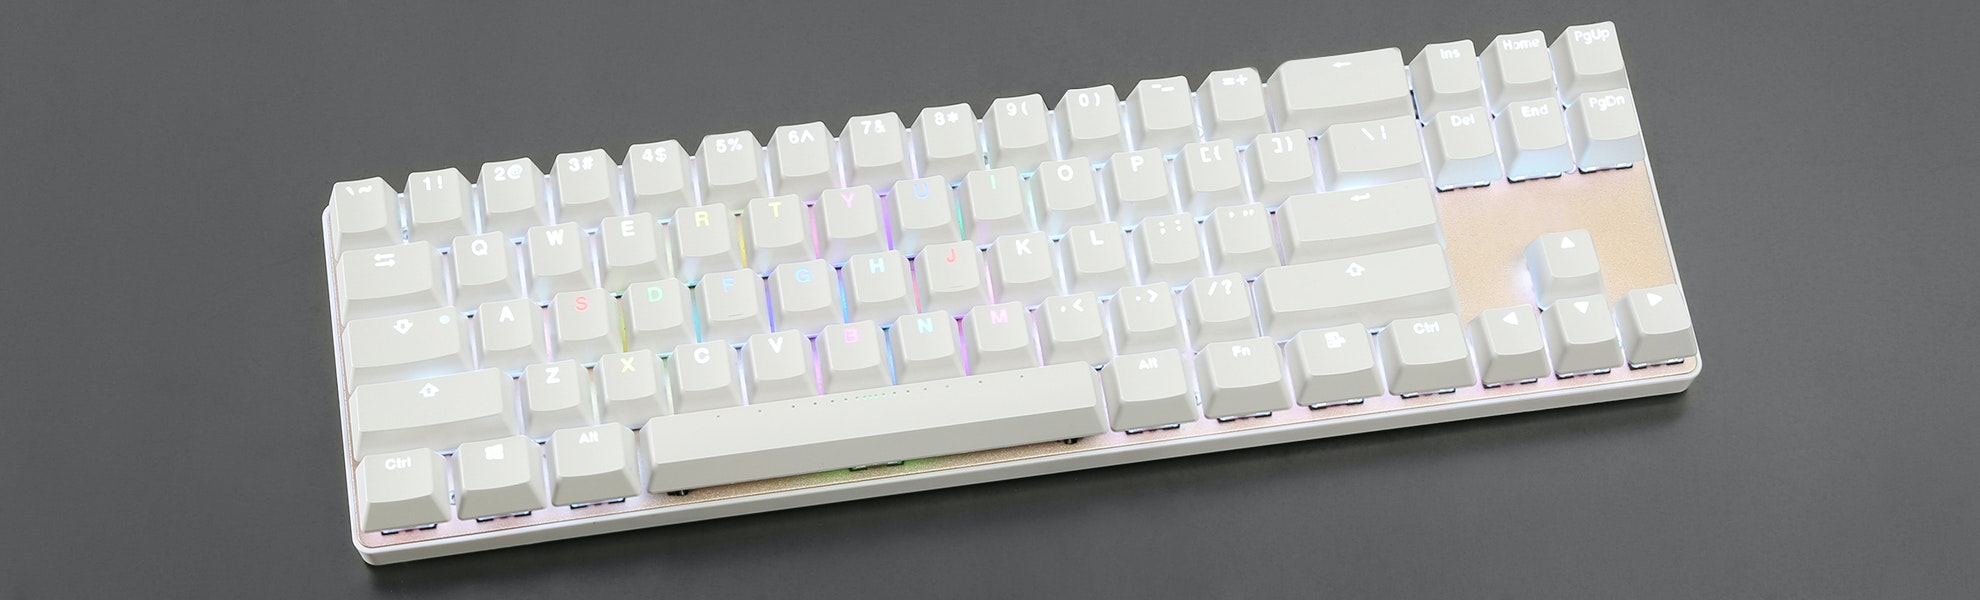 KC71 RGB Bluetooth Typist Mechanical Keyboard